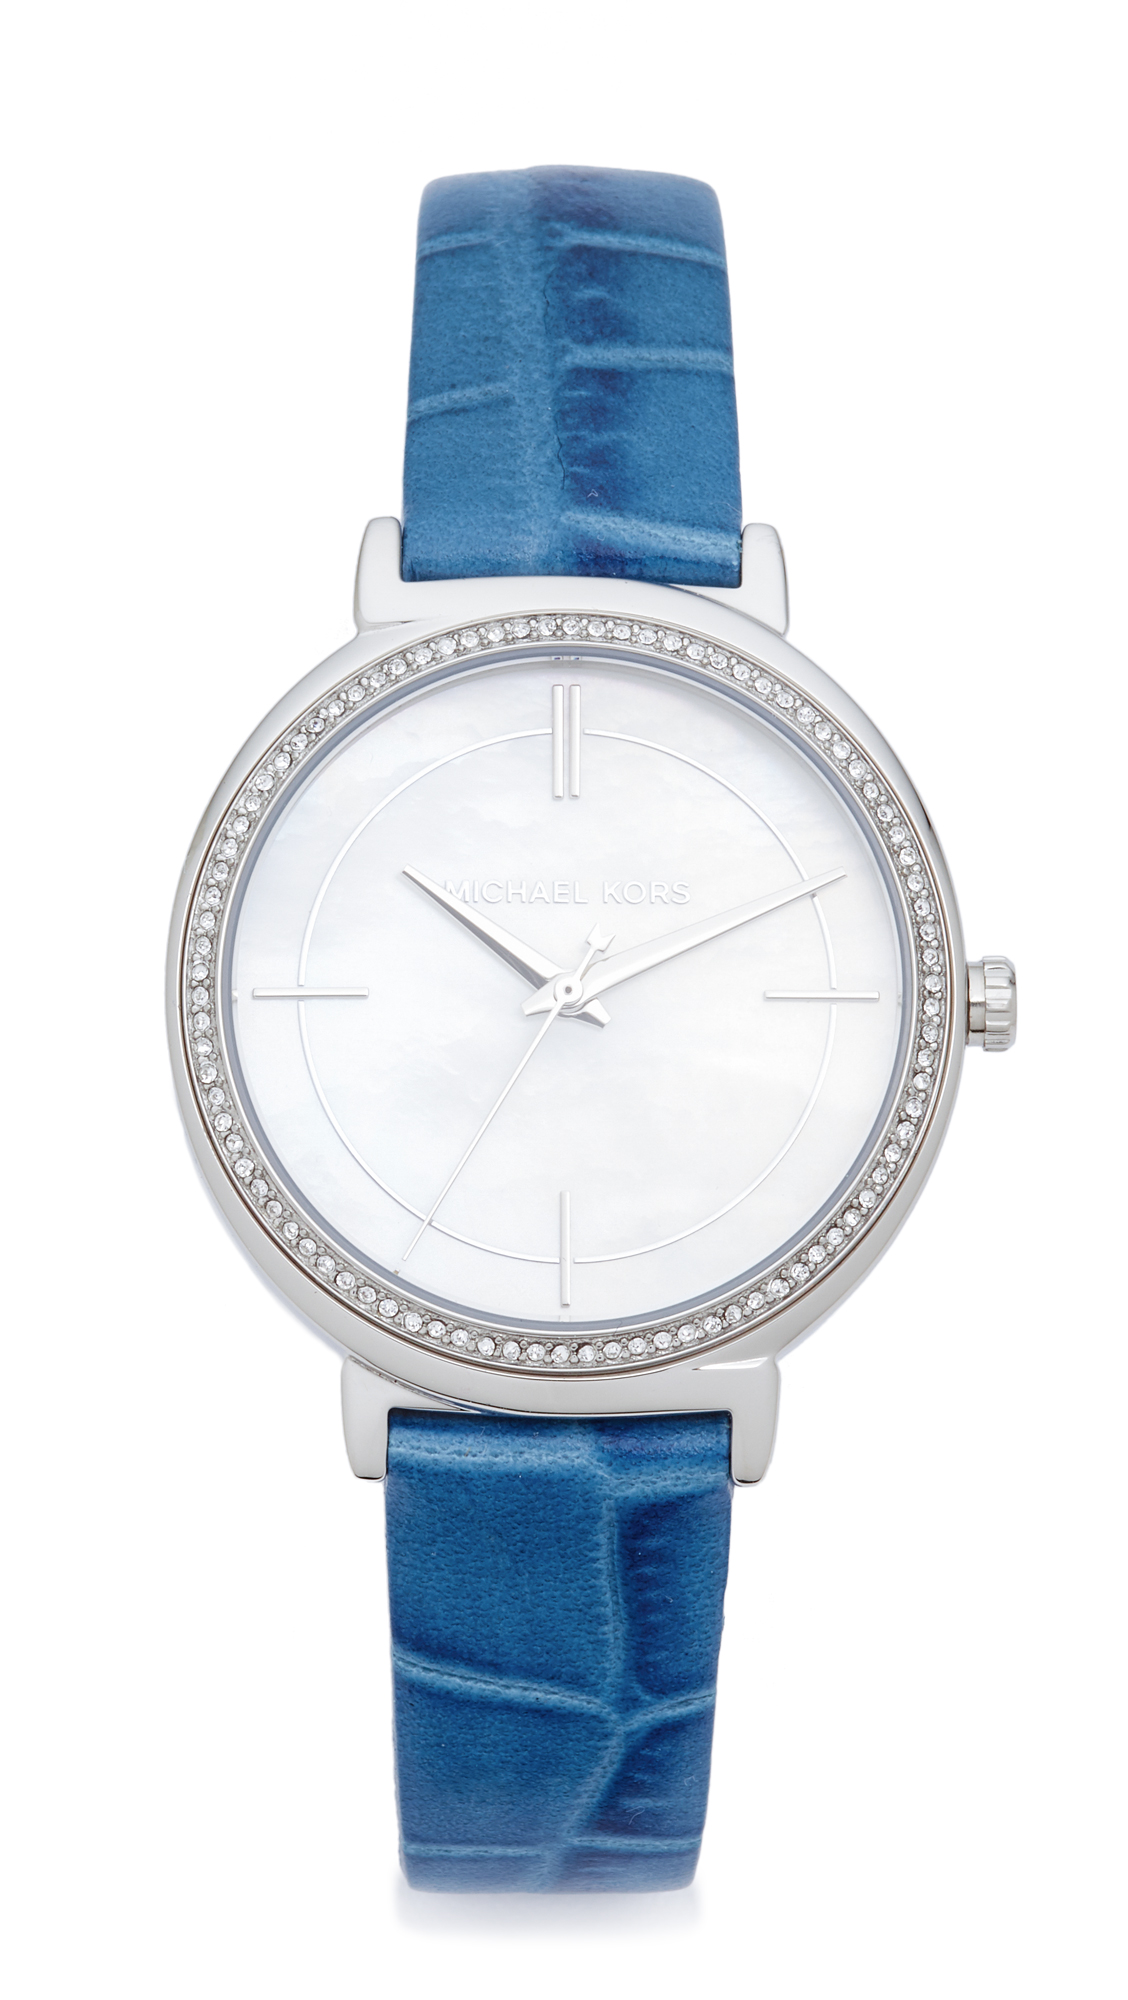 michael kors female michael kors cinthia leather watch silverblue